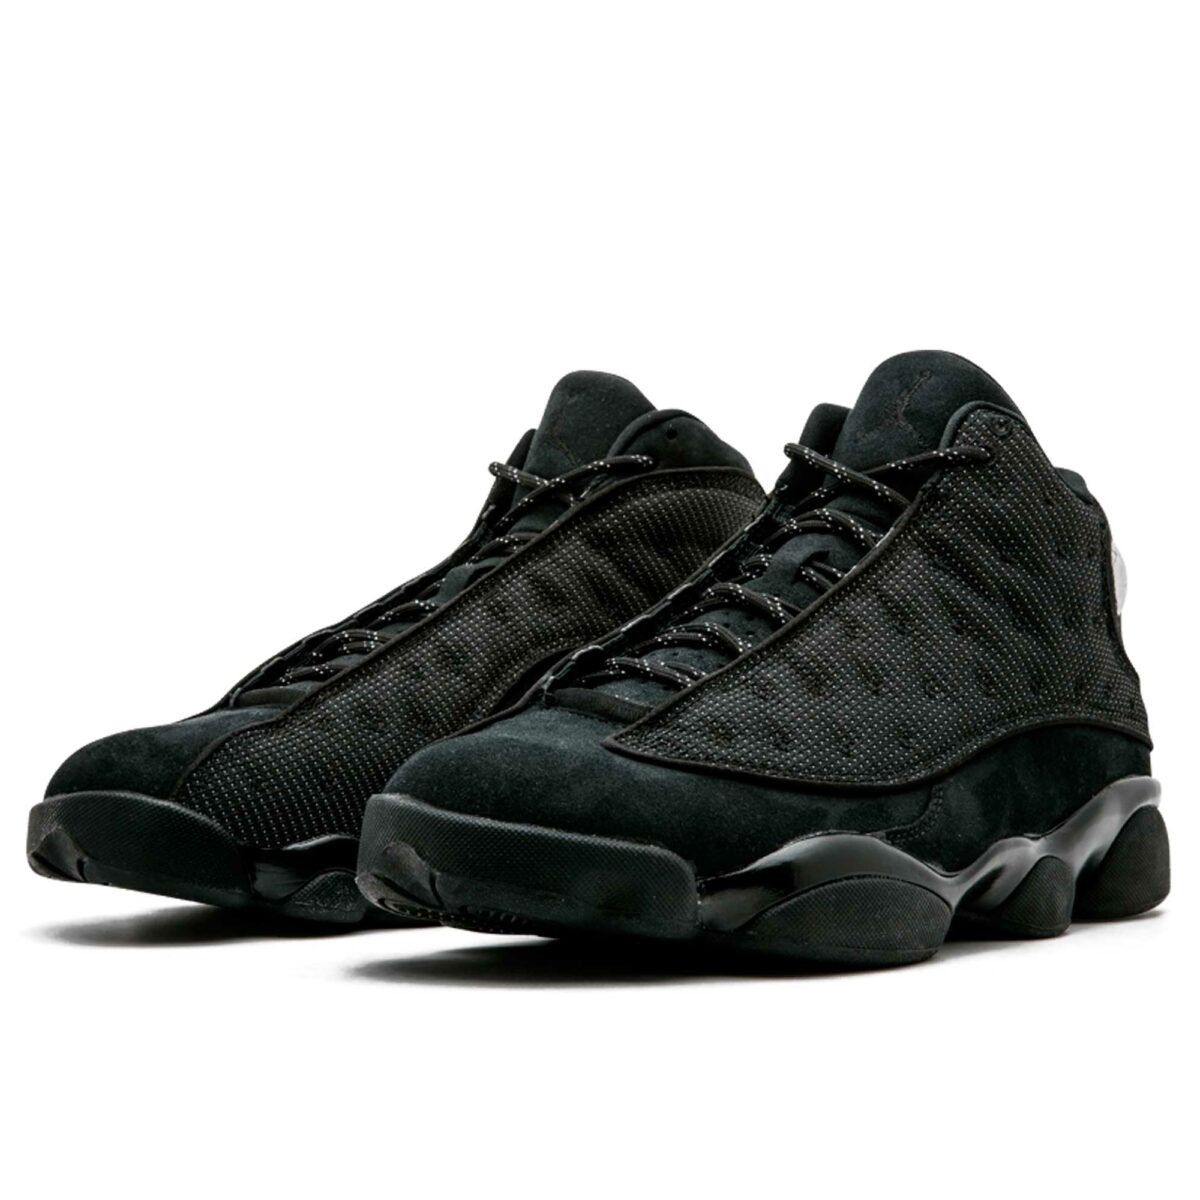 nike air Jordan 13 retro all black 414571-011 купить